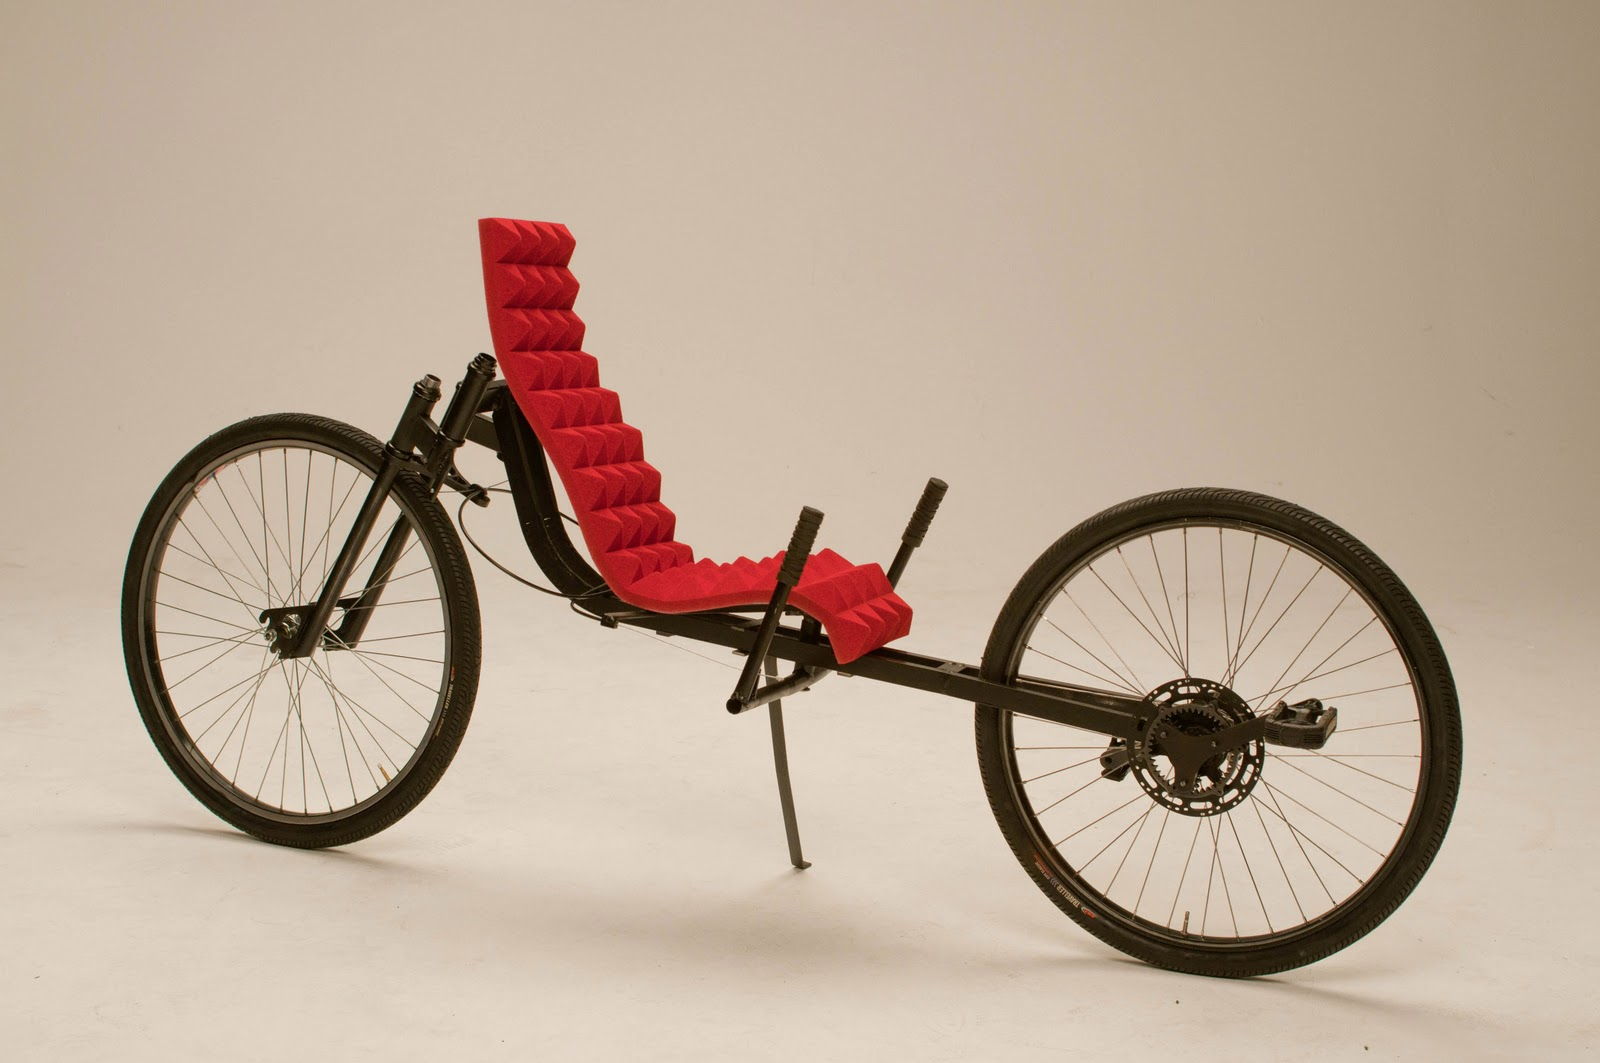 Rws Recumbent Bicycle Design Temptation